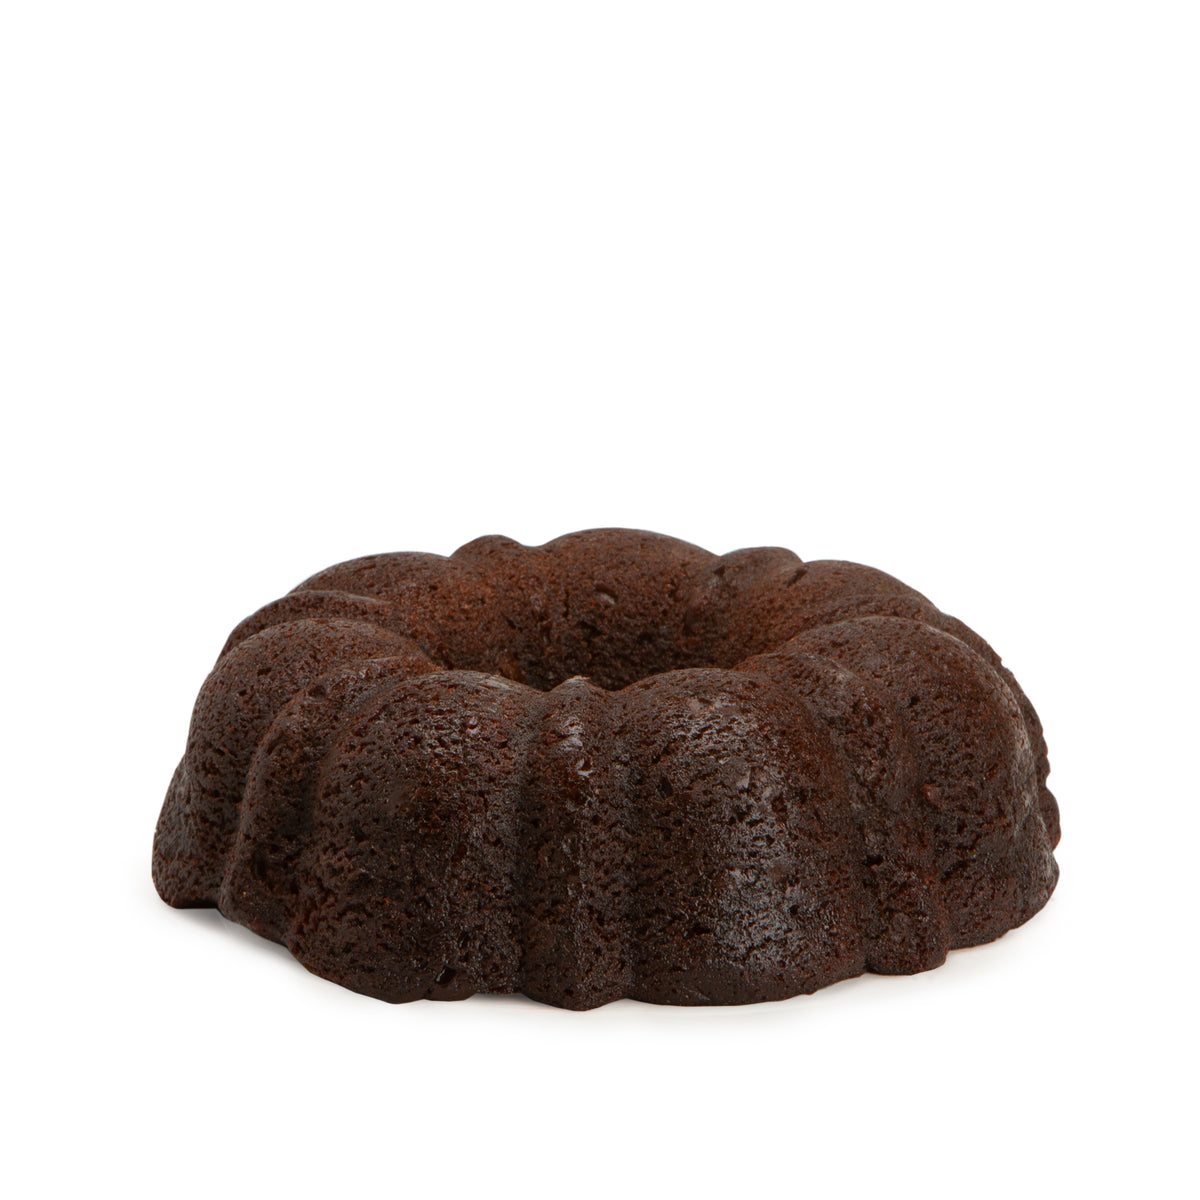 Chocolate Chocolate Chip Bundt Cake